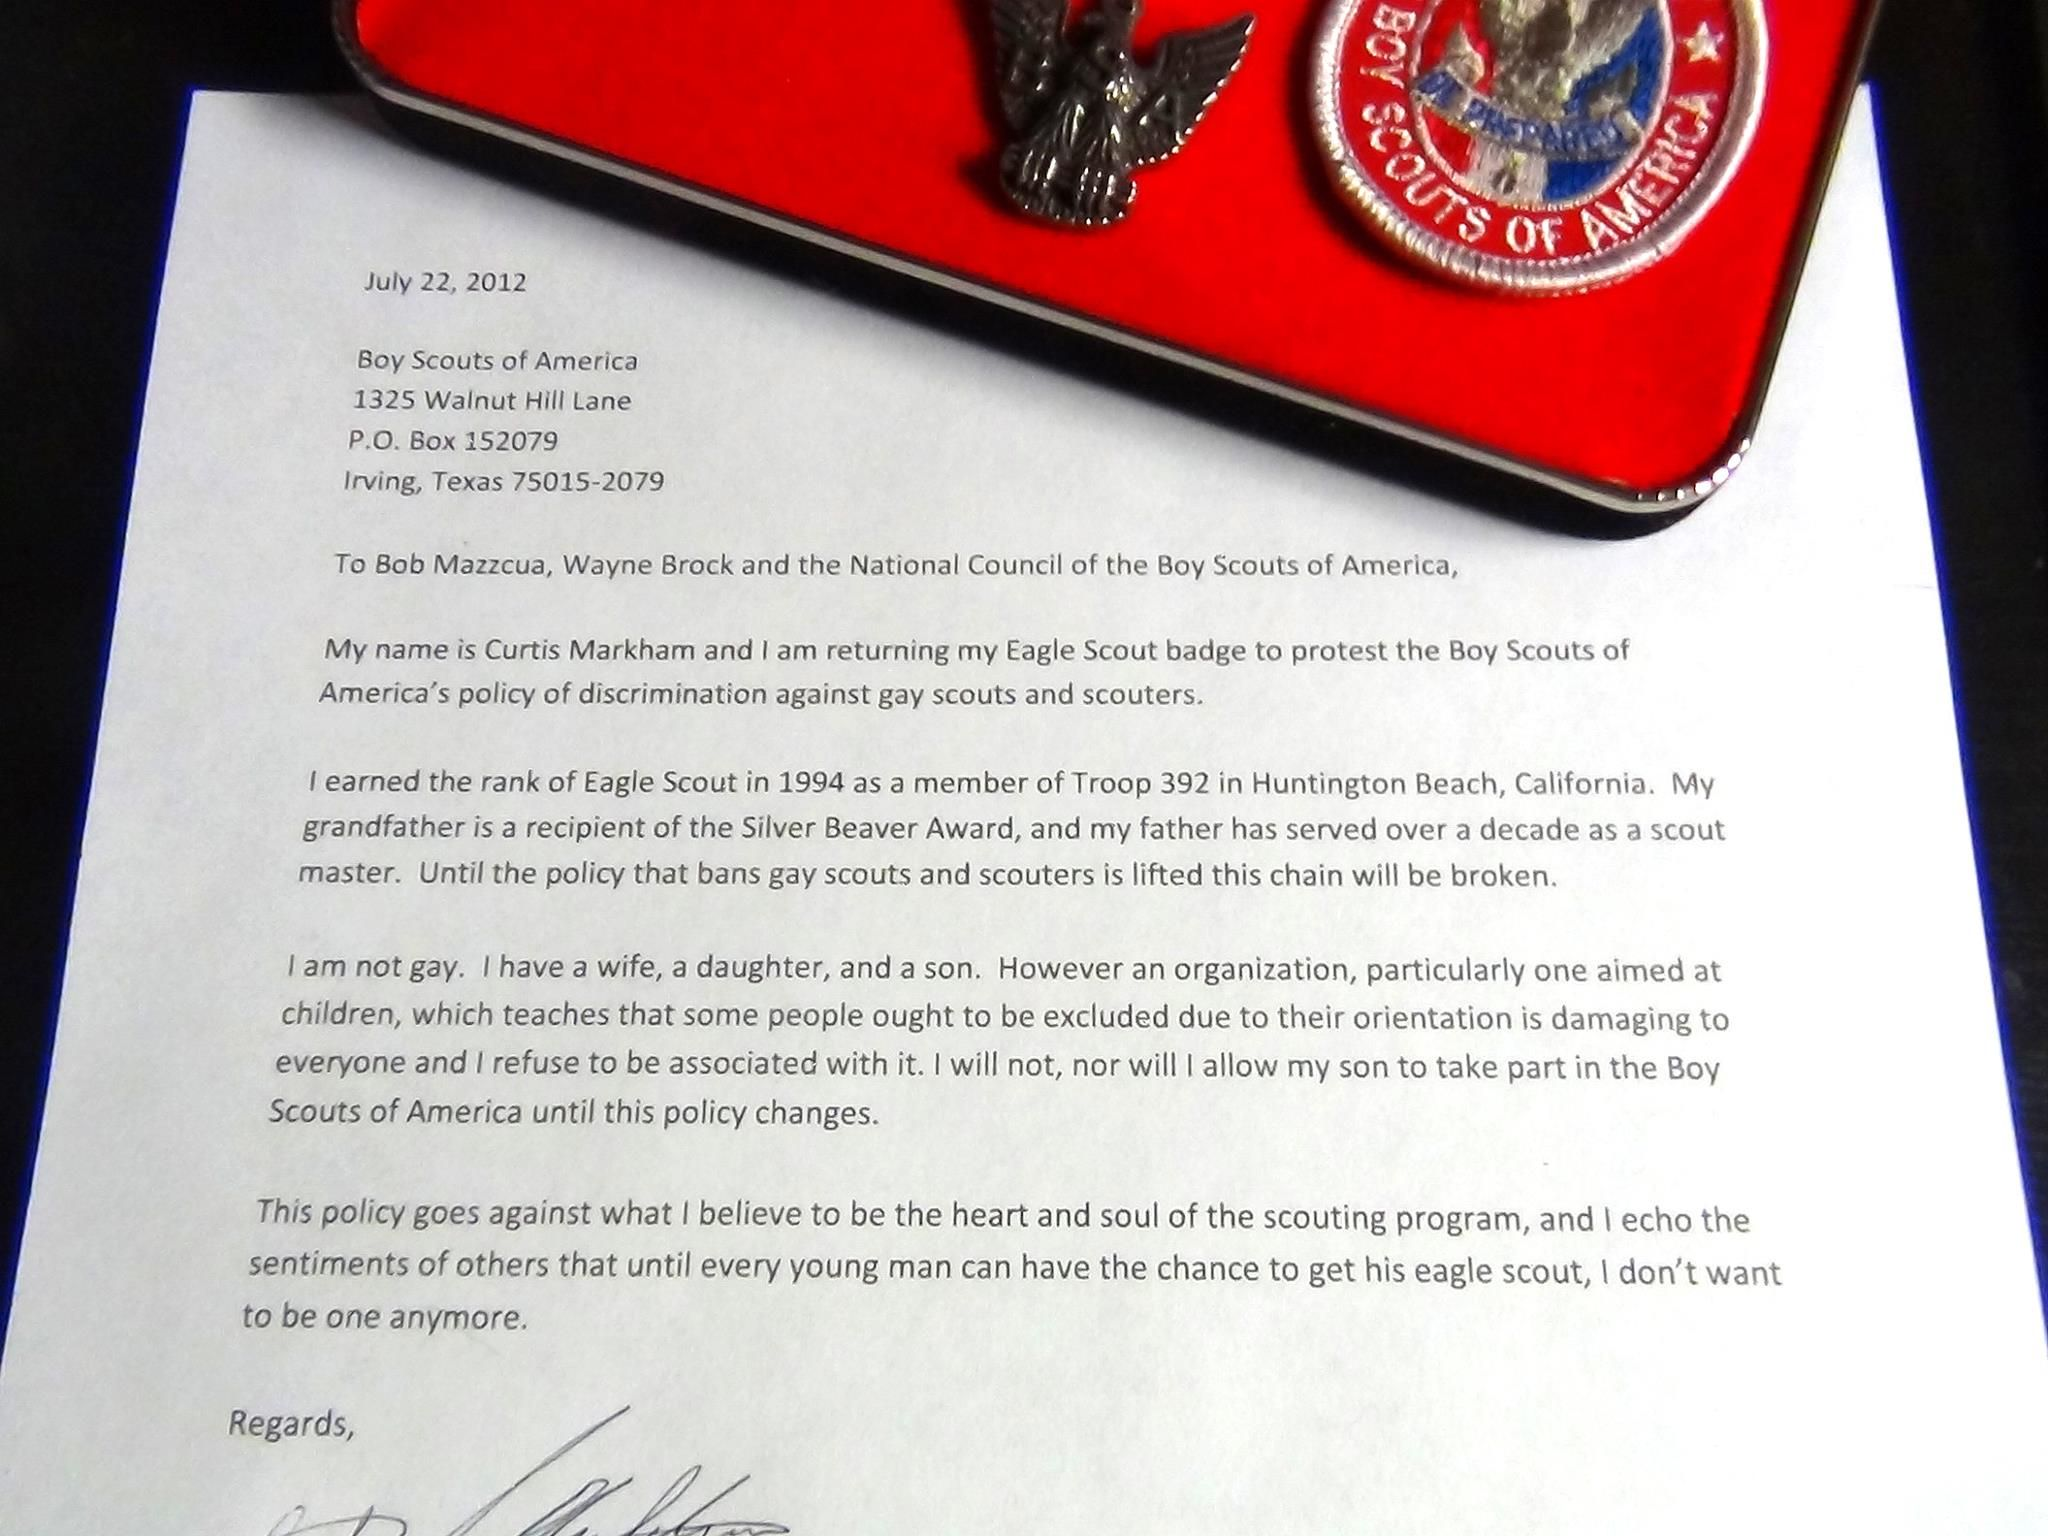 An Eagle ScoutS Letter To Boy Scouts Of America On Why He CanT